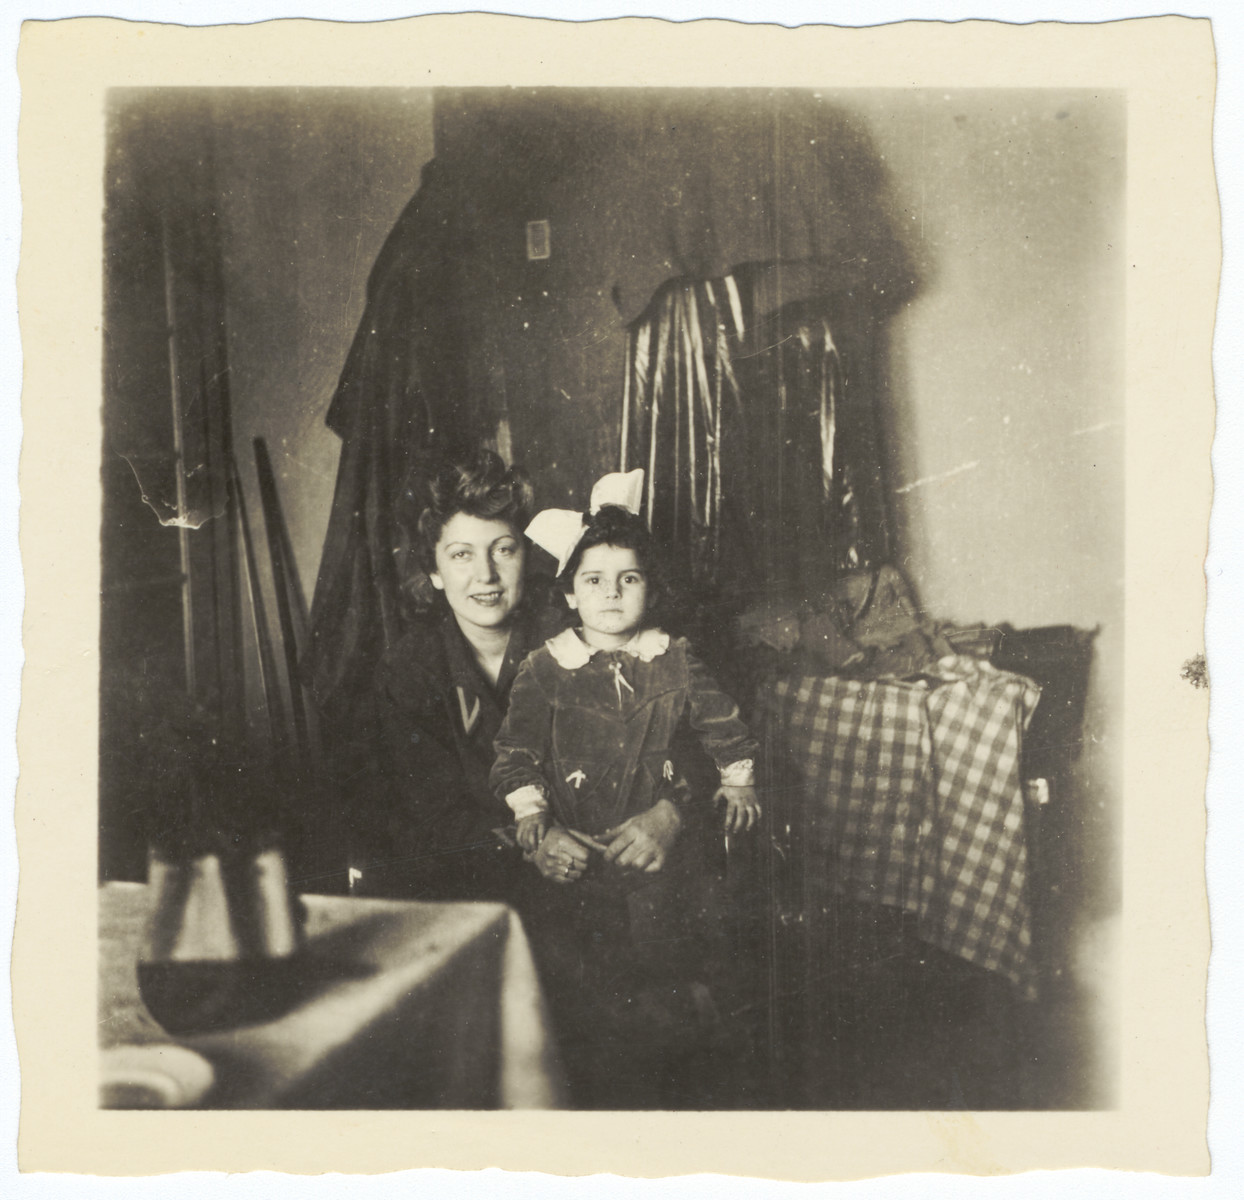 A Jewish woman visits her niece (who later became her adopted daughter) while she is in hiding.  Pictured are Sara Kuniegis and Krystyna Lindenbaum.